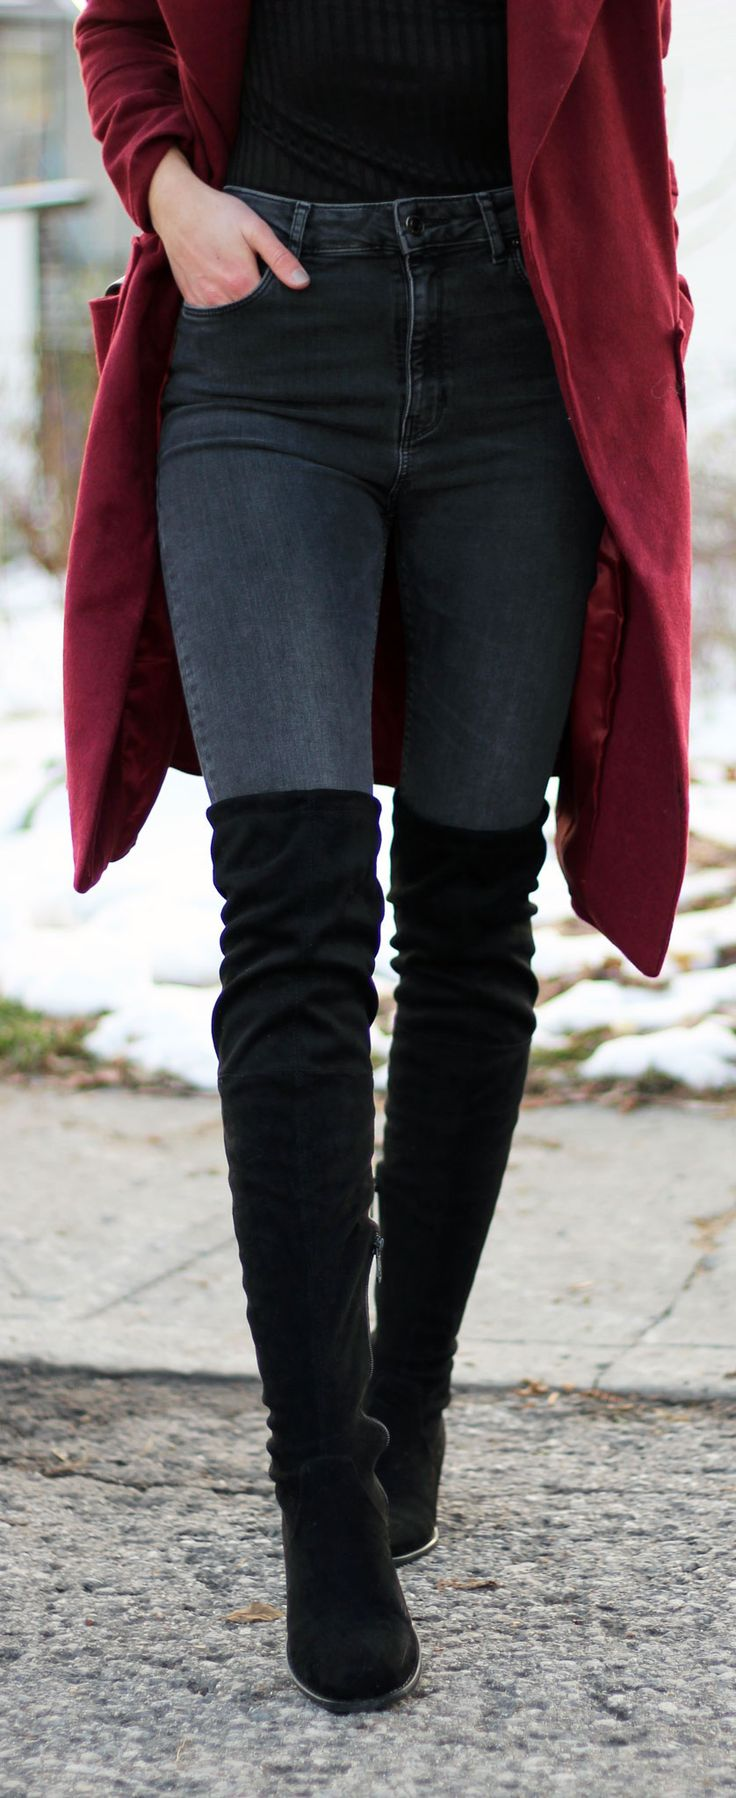 Winter style to keep warm: a long duster coat in this berry color paired with over the knee black boots. By fashion blogger Marie's Bazaar